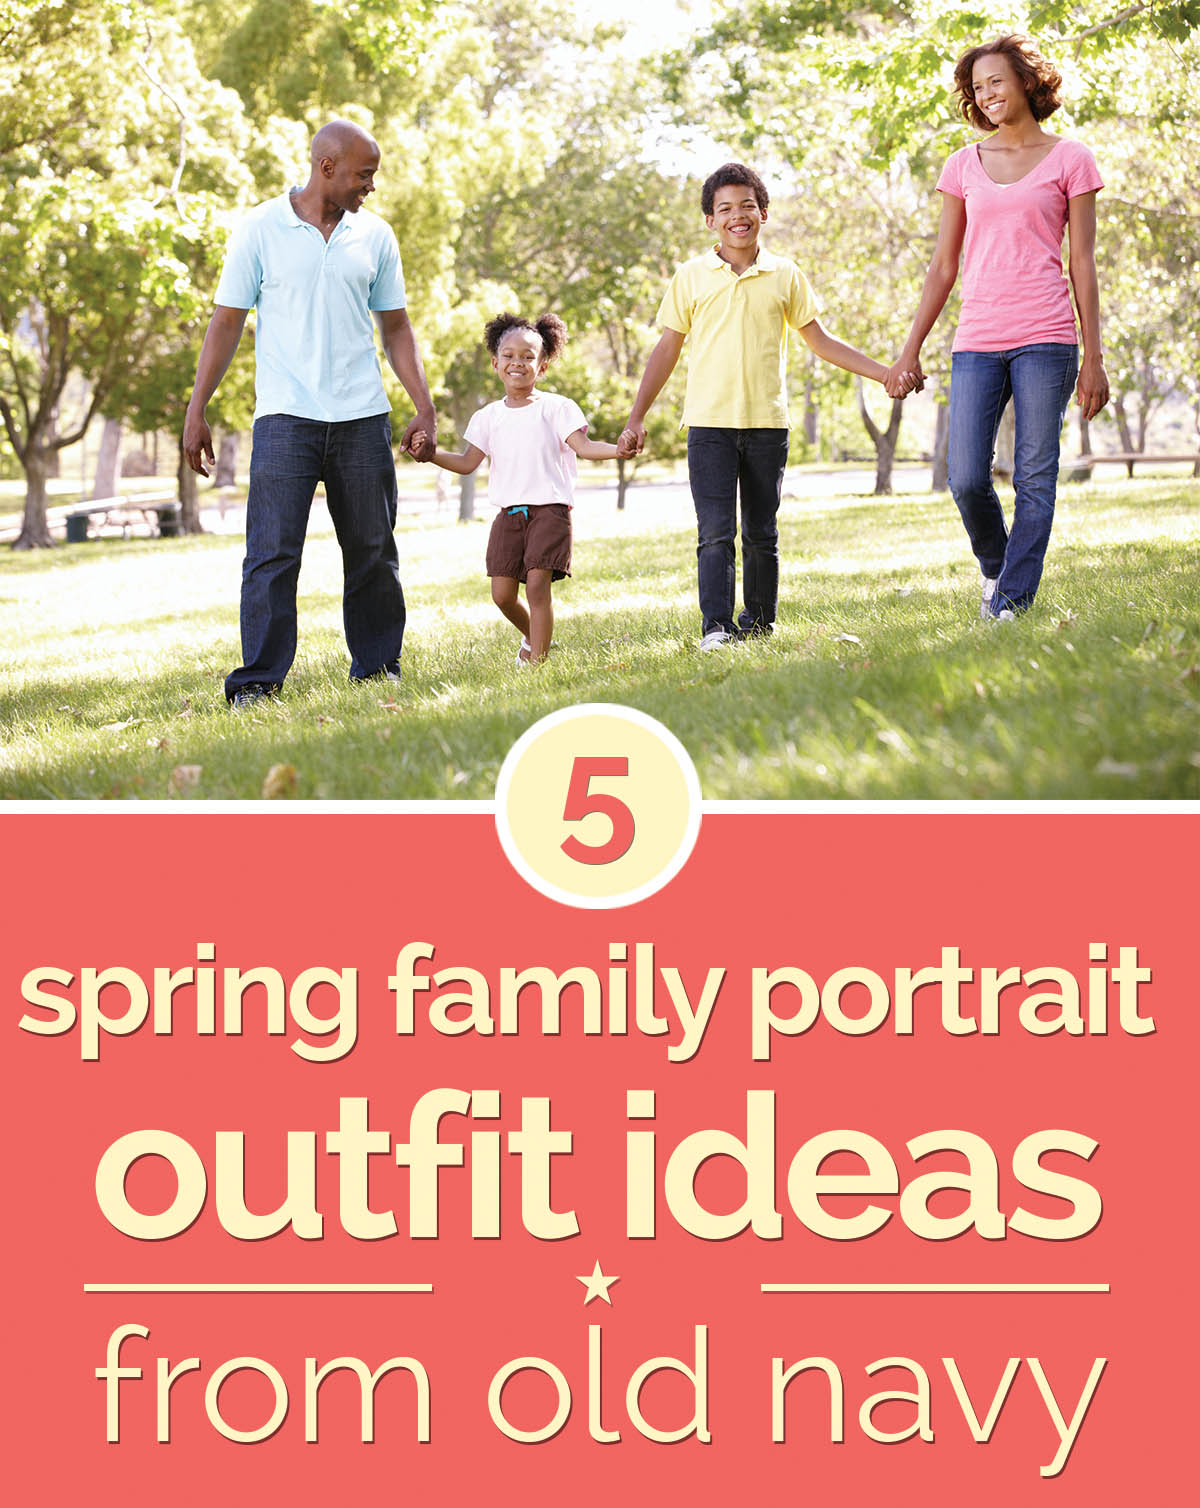 5 Spring Family Portrait Outfit Ideas from Old Navy | thegoodstuff